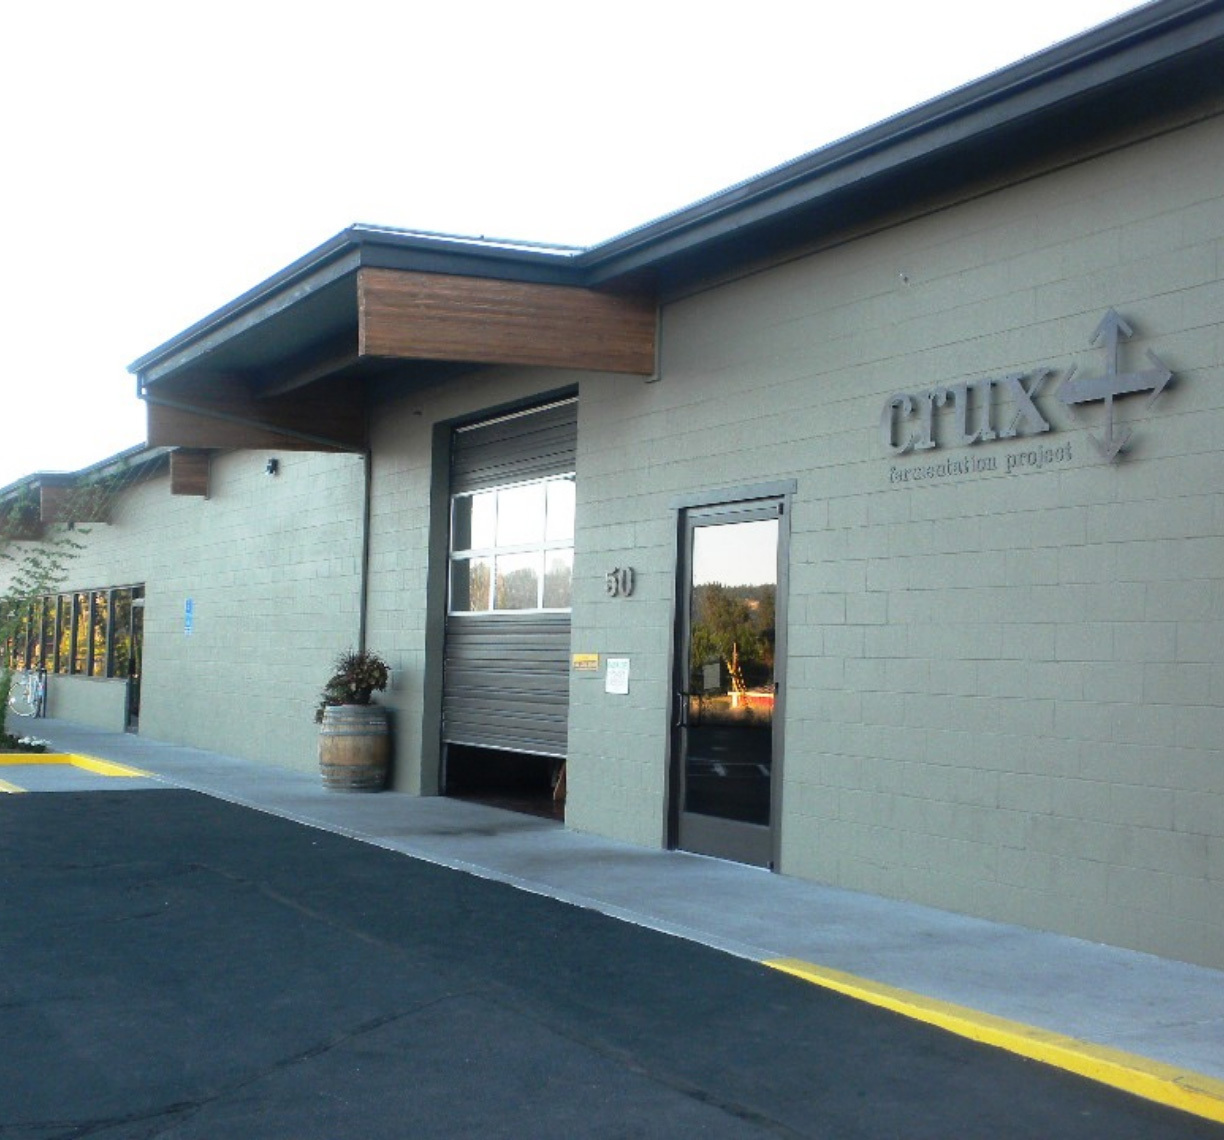 Crux Fermentation Brewery and Tasting Room